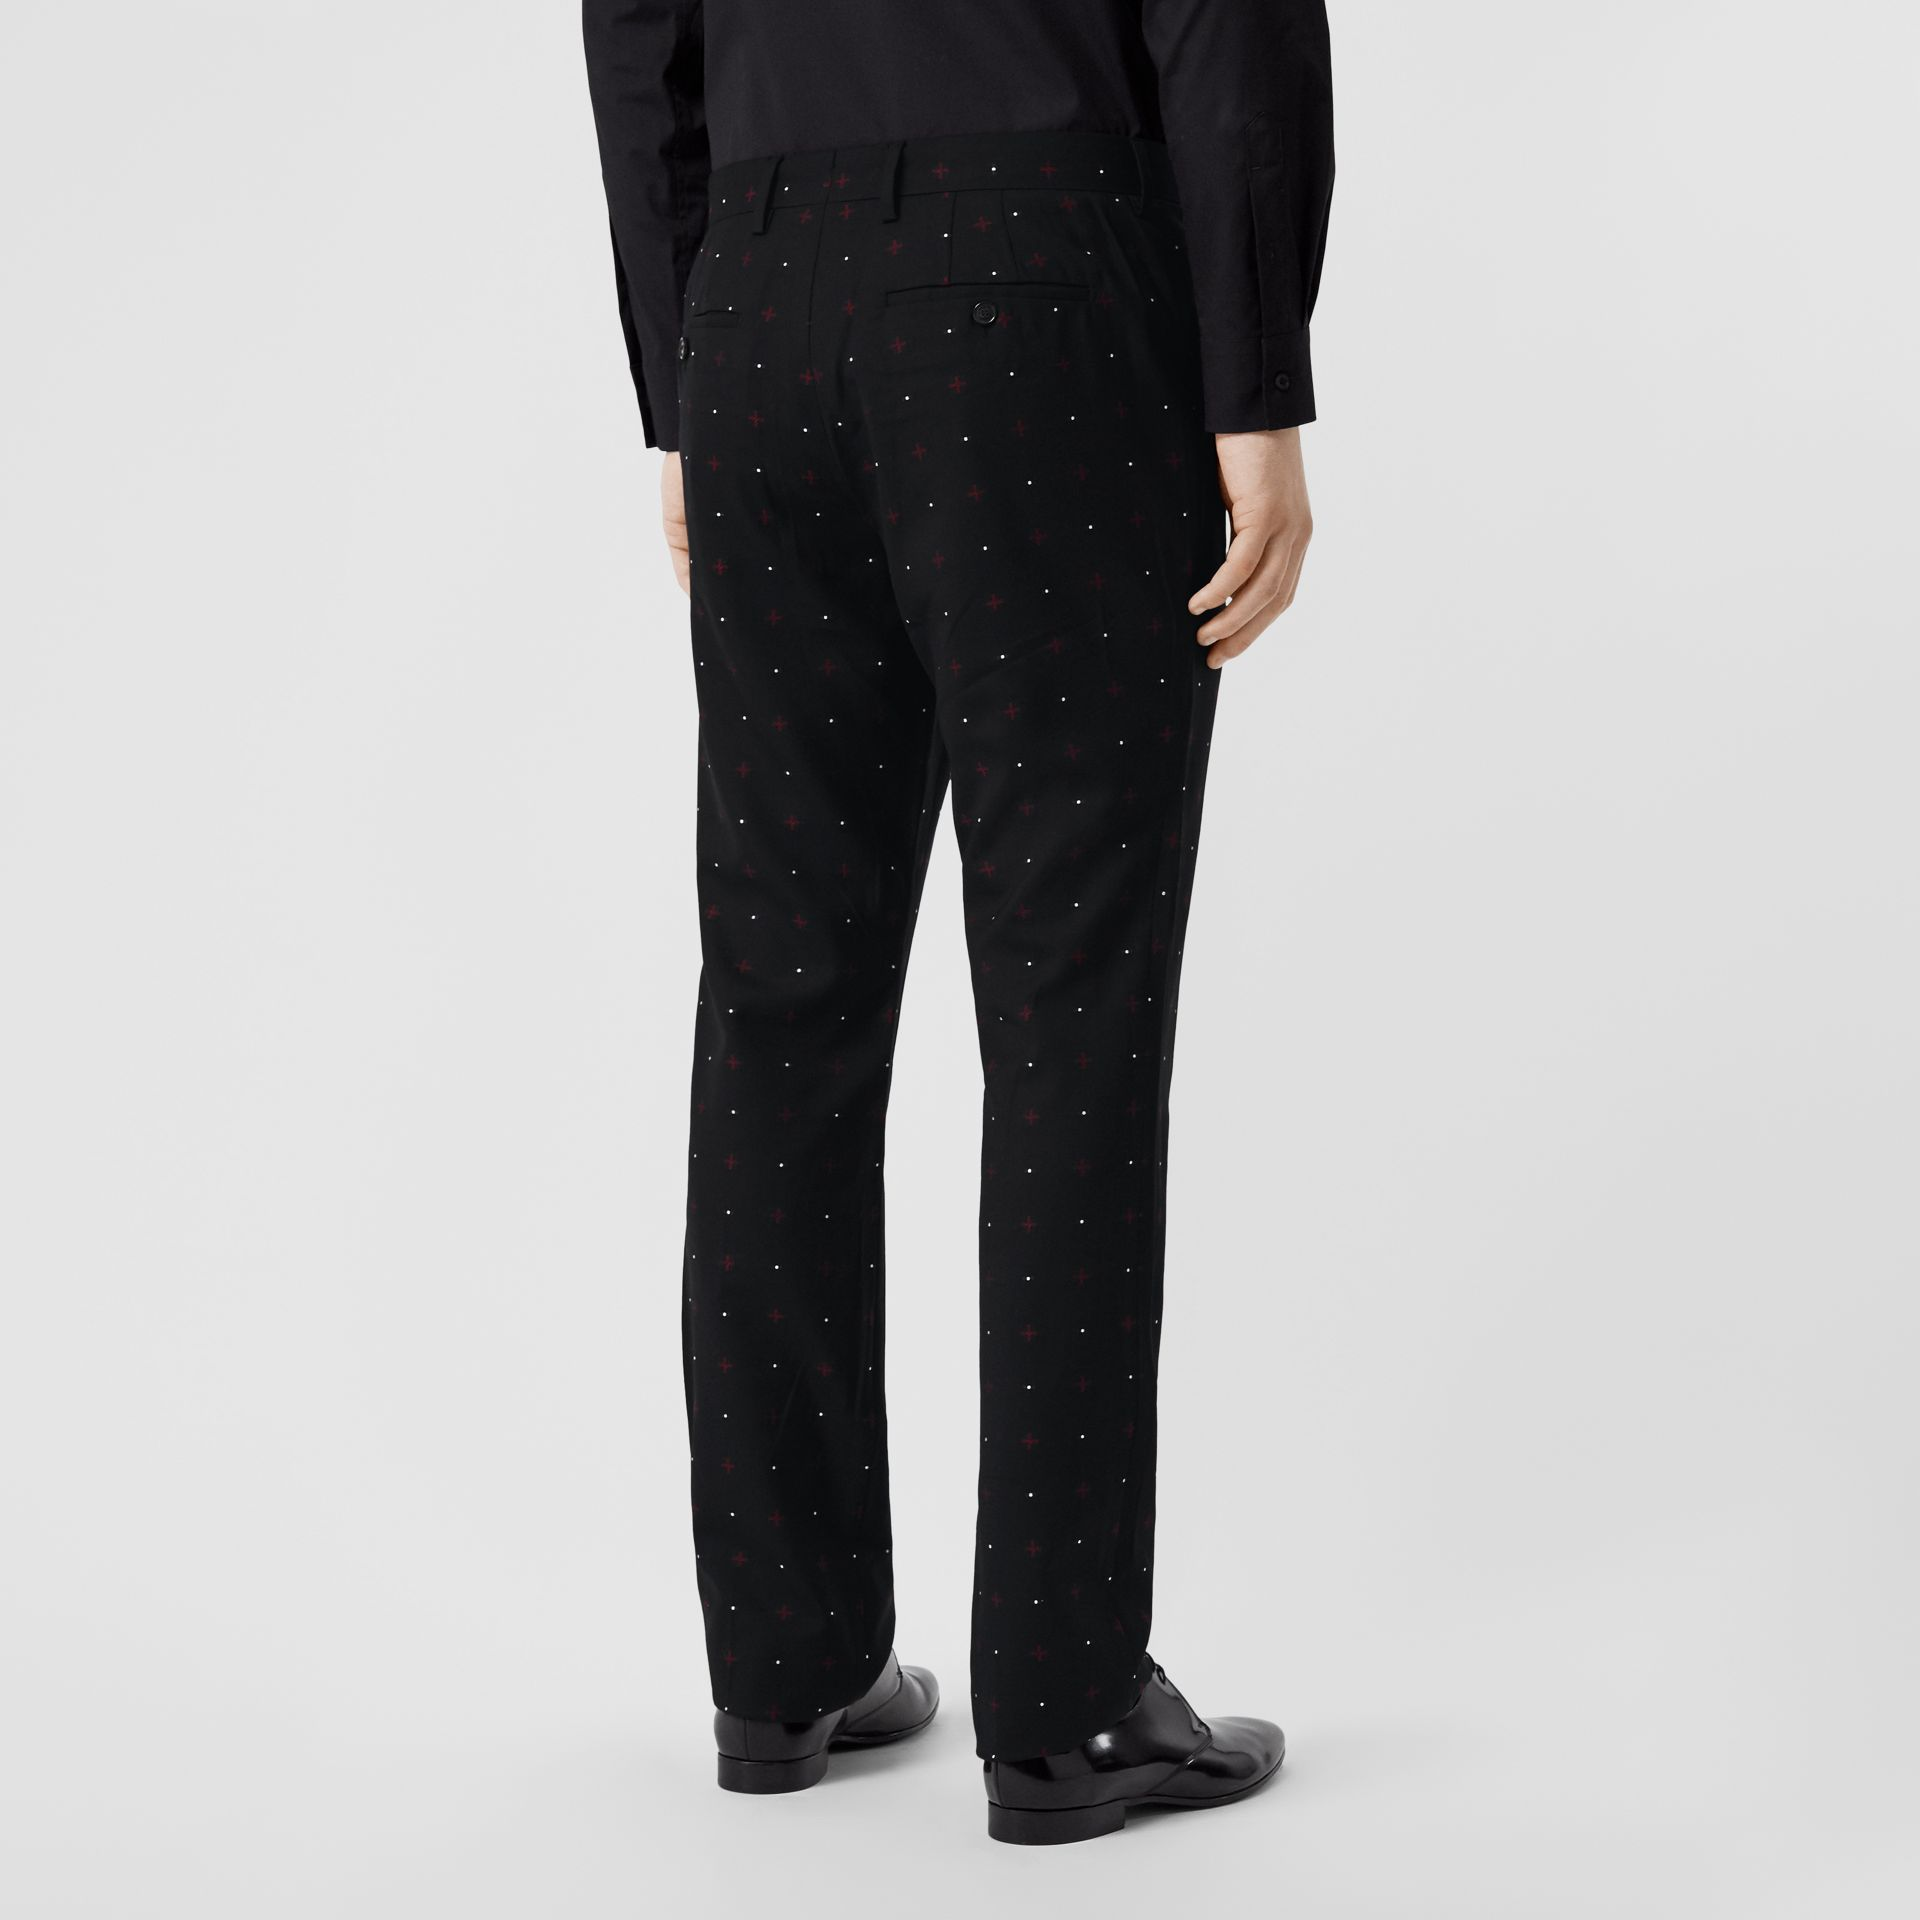 Classic Fit Fil Coupé Wool Cotton Tailored Trousers in Black - Men | Burberry Australia - gallery image 2